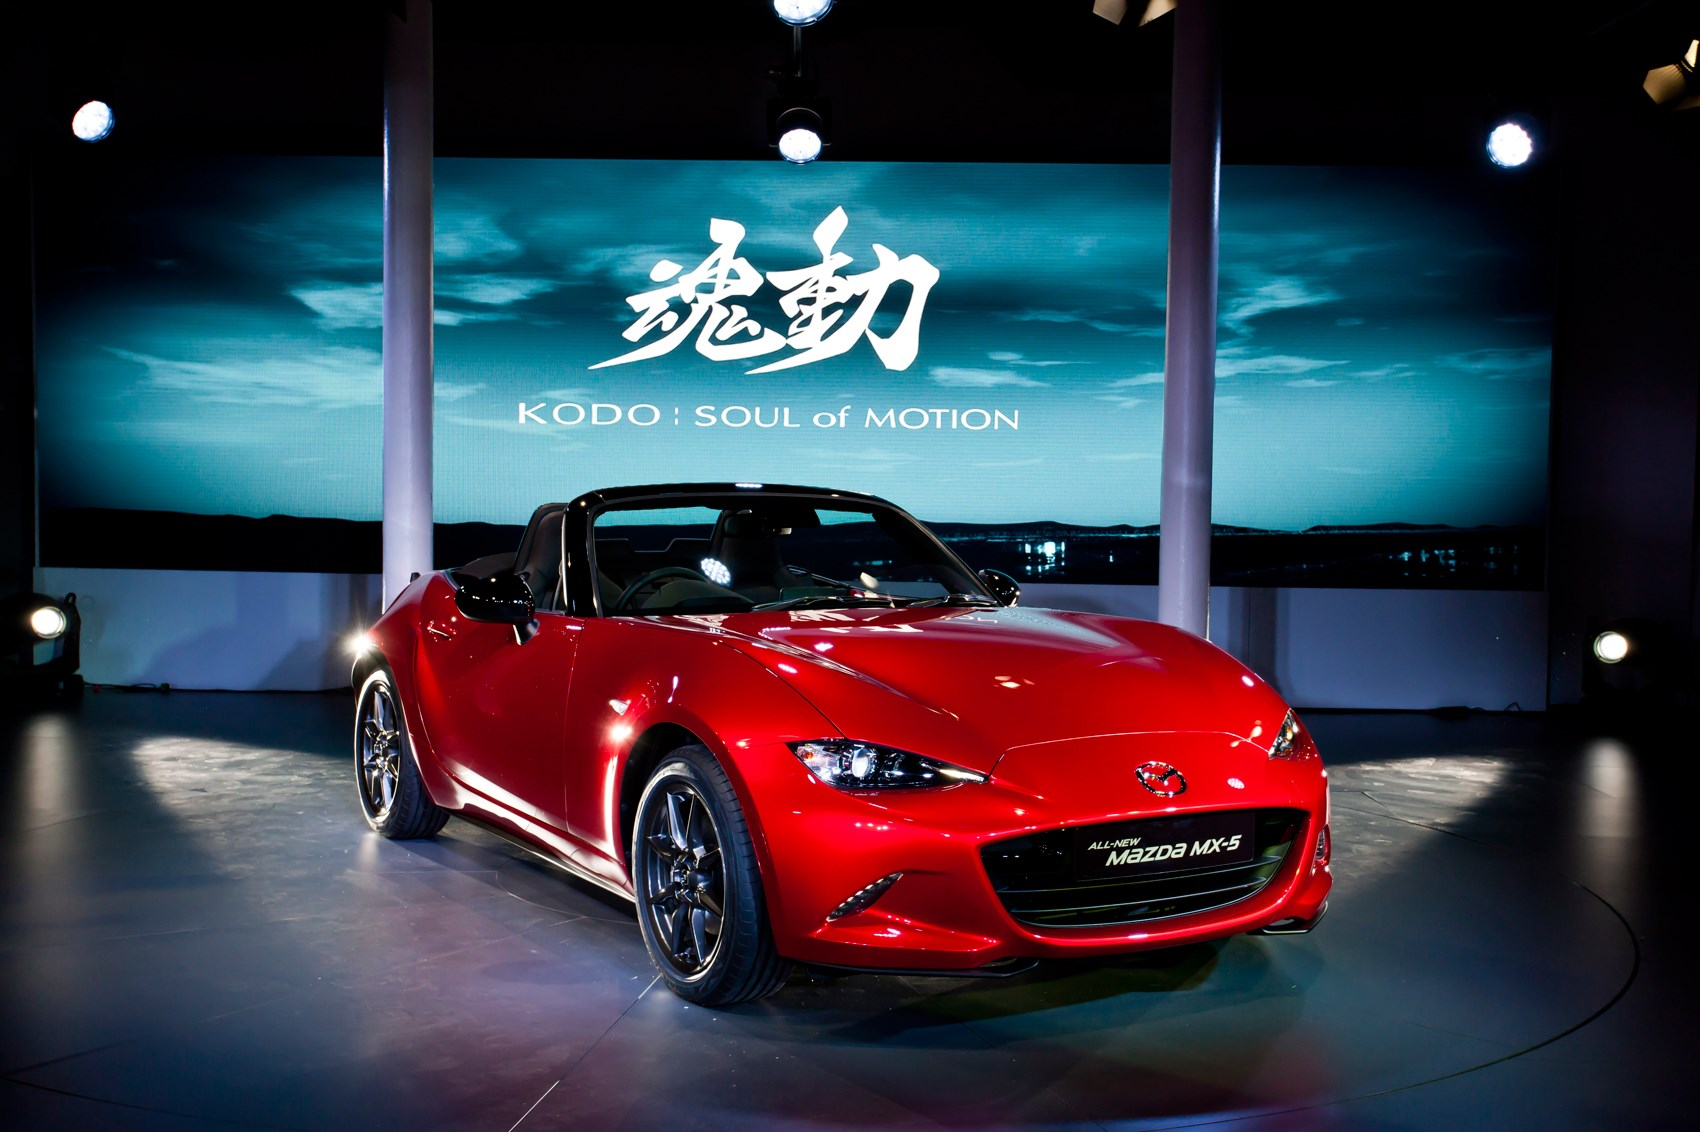 mazda mx 5 wins 2016 world car of the year by car magazine. Black Bedroom Furniture Sets. Home Design Ideas